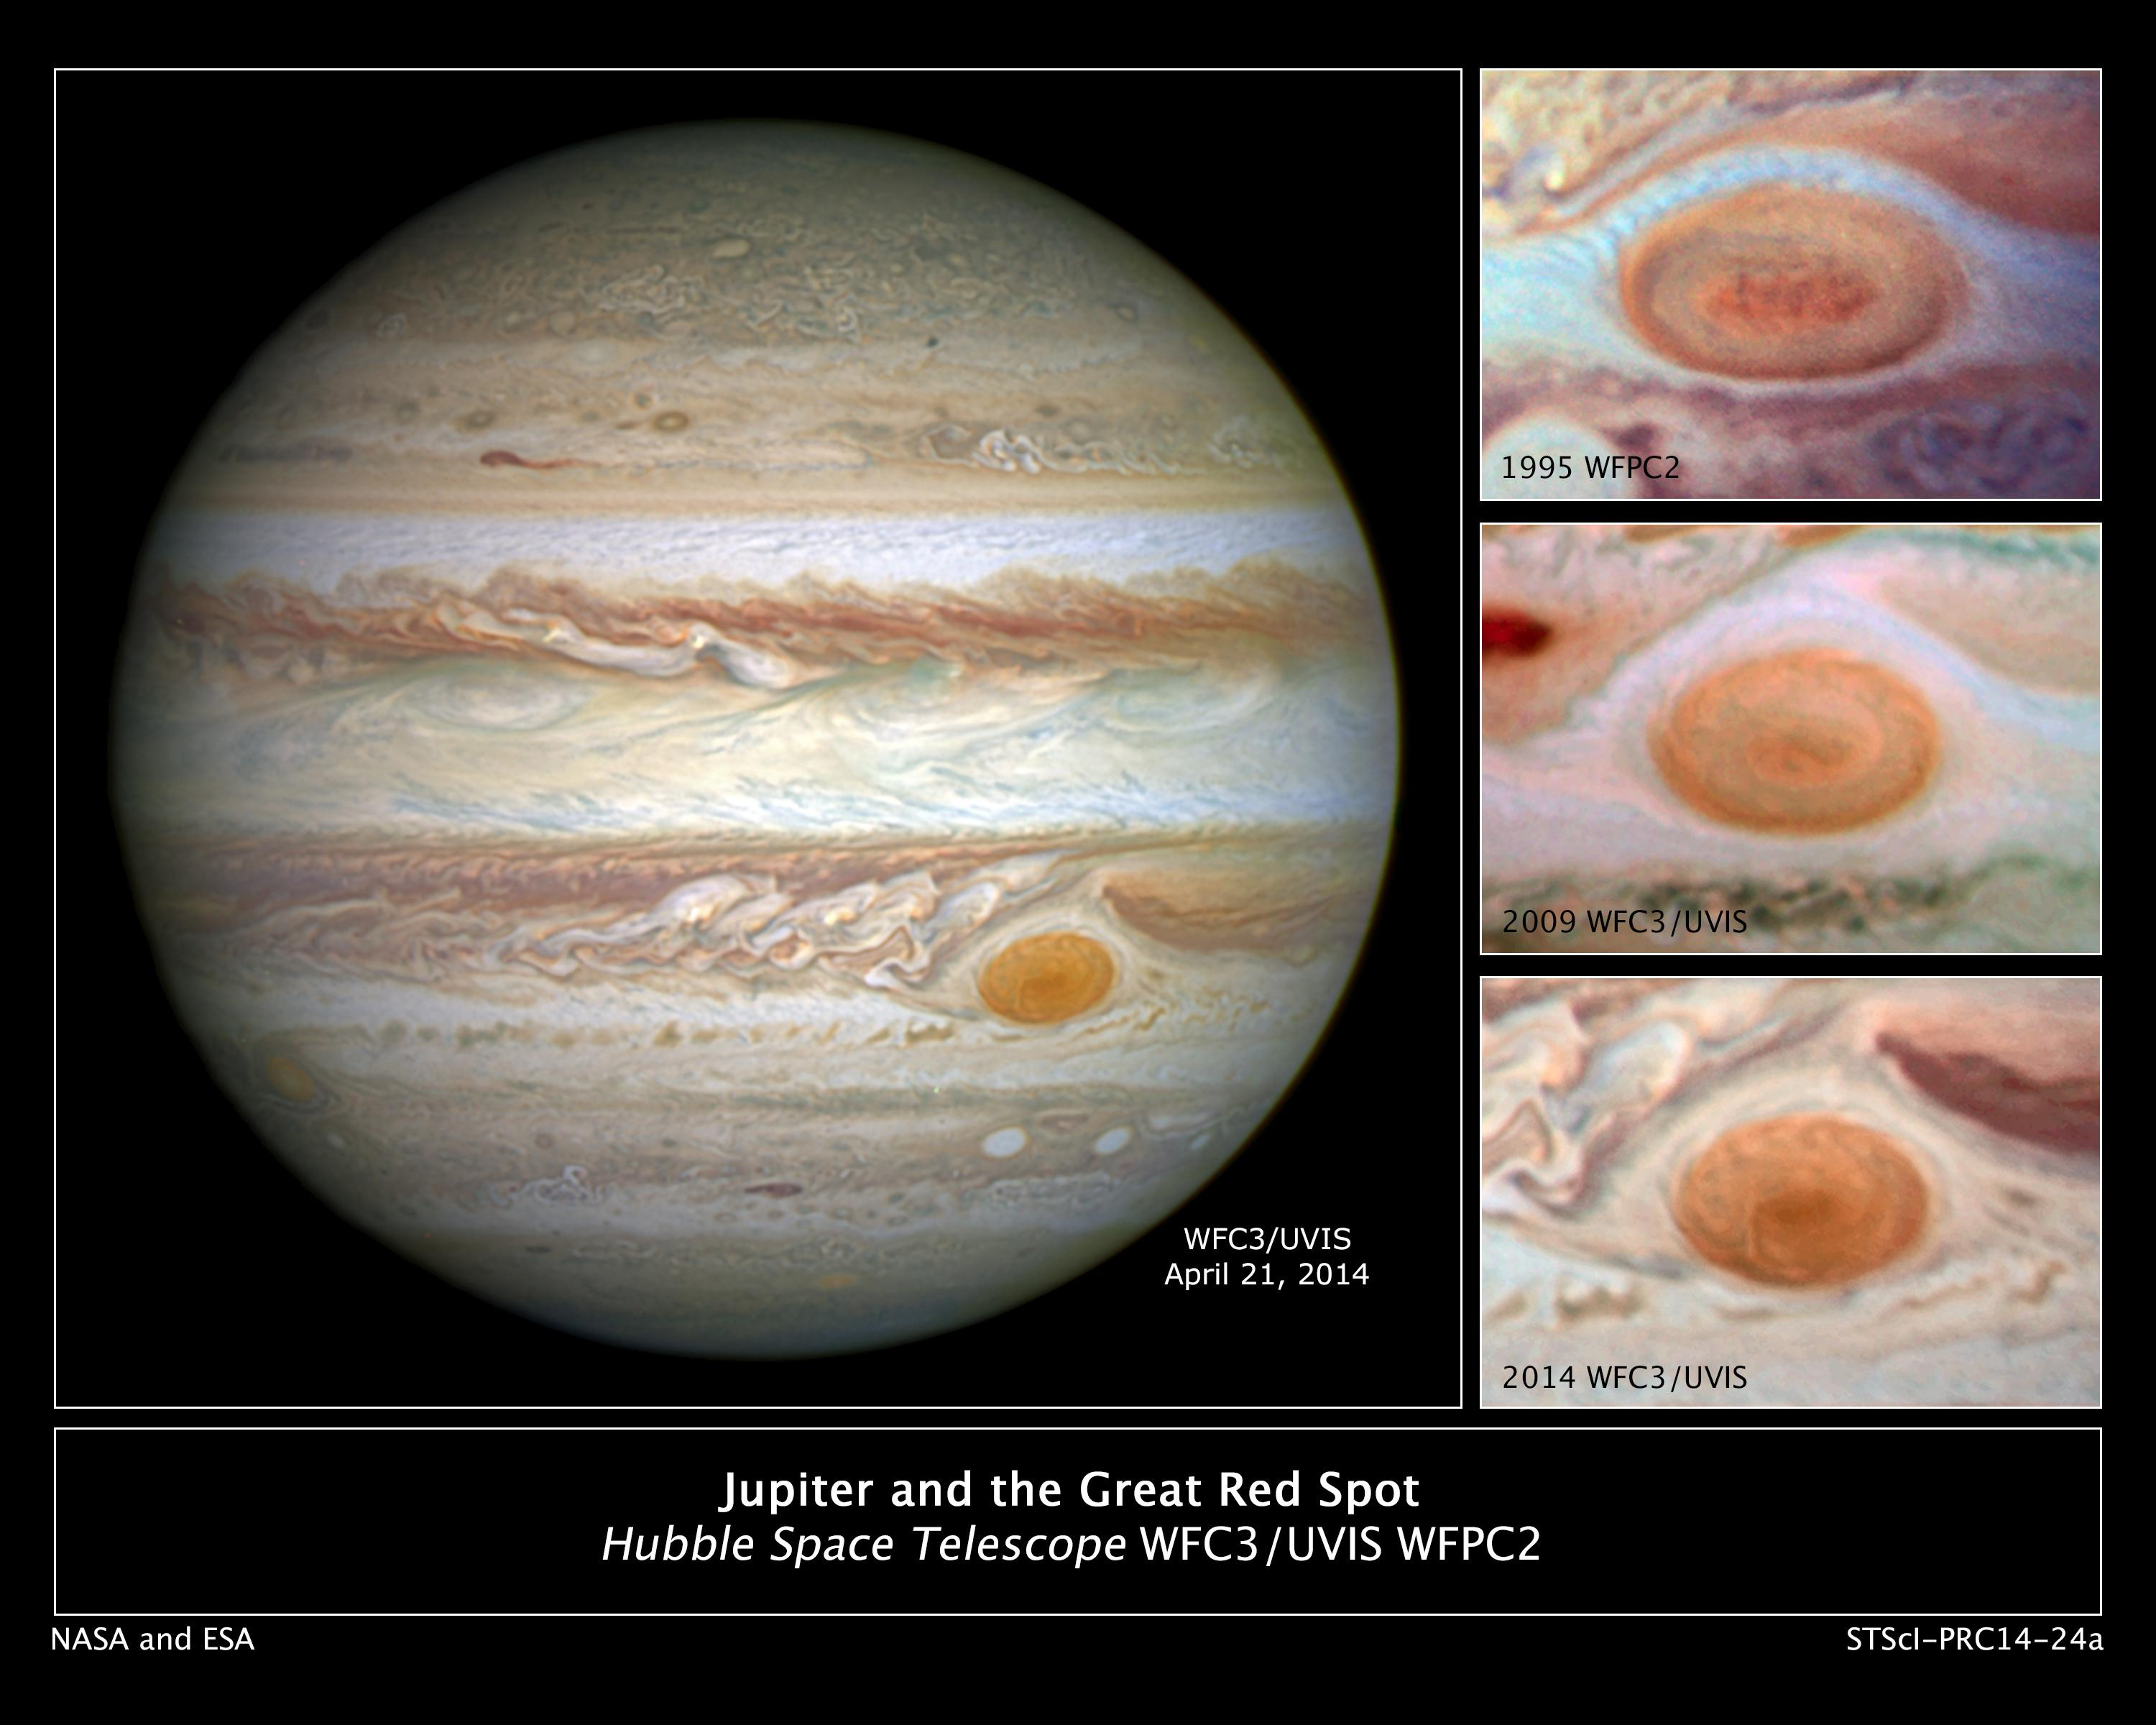 Jupiter's Great Red Spot Size